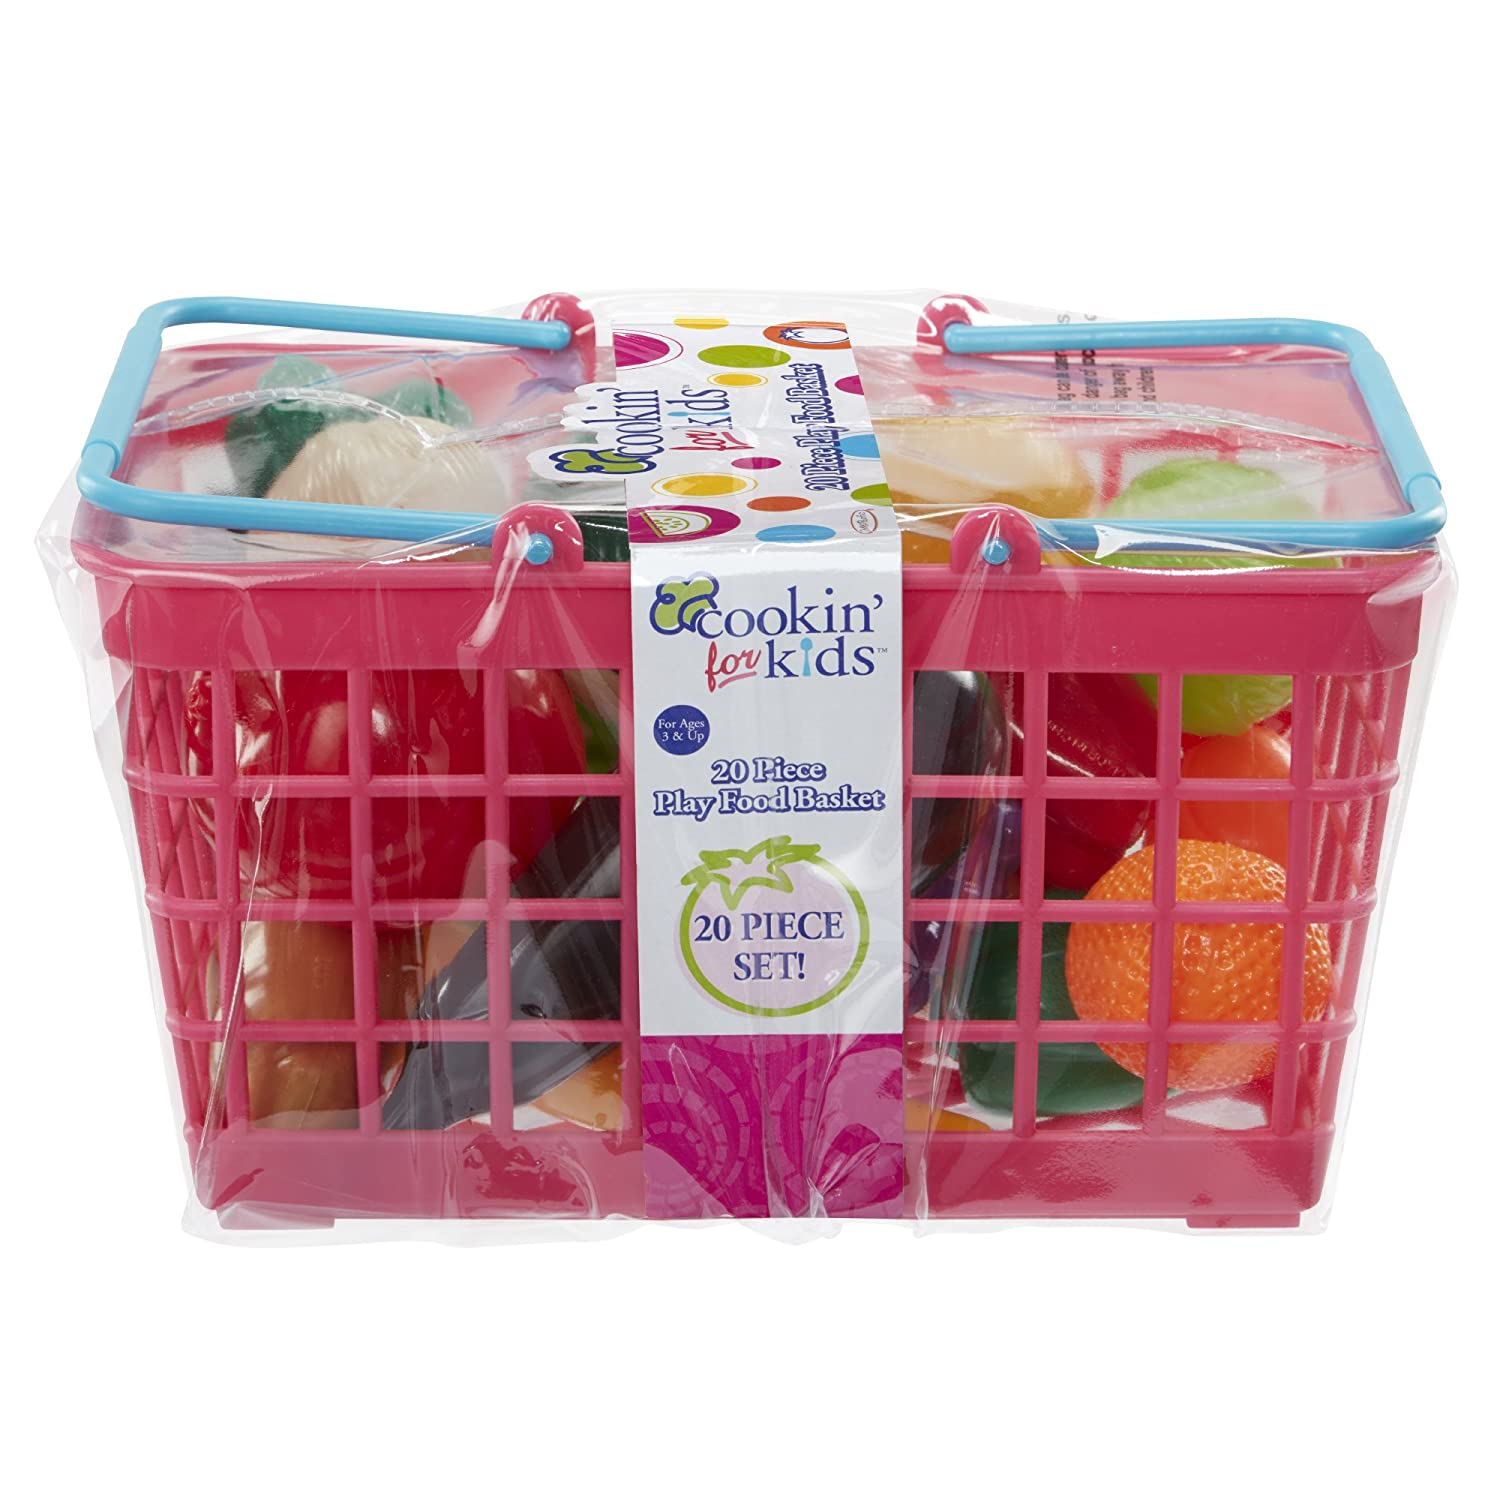 Cookin for Kids Grocery Basket, rosa by Cookin' for Kids